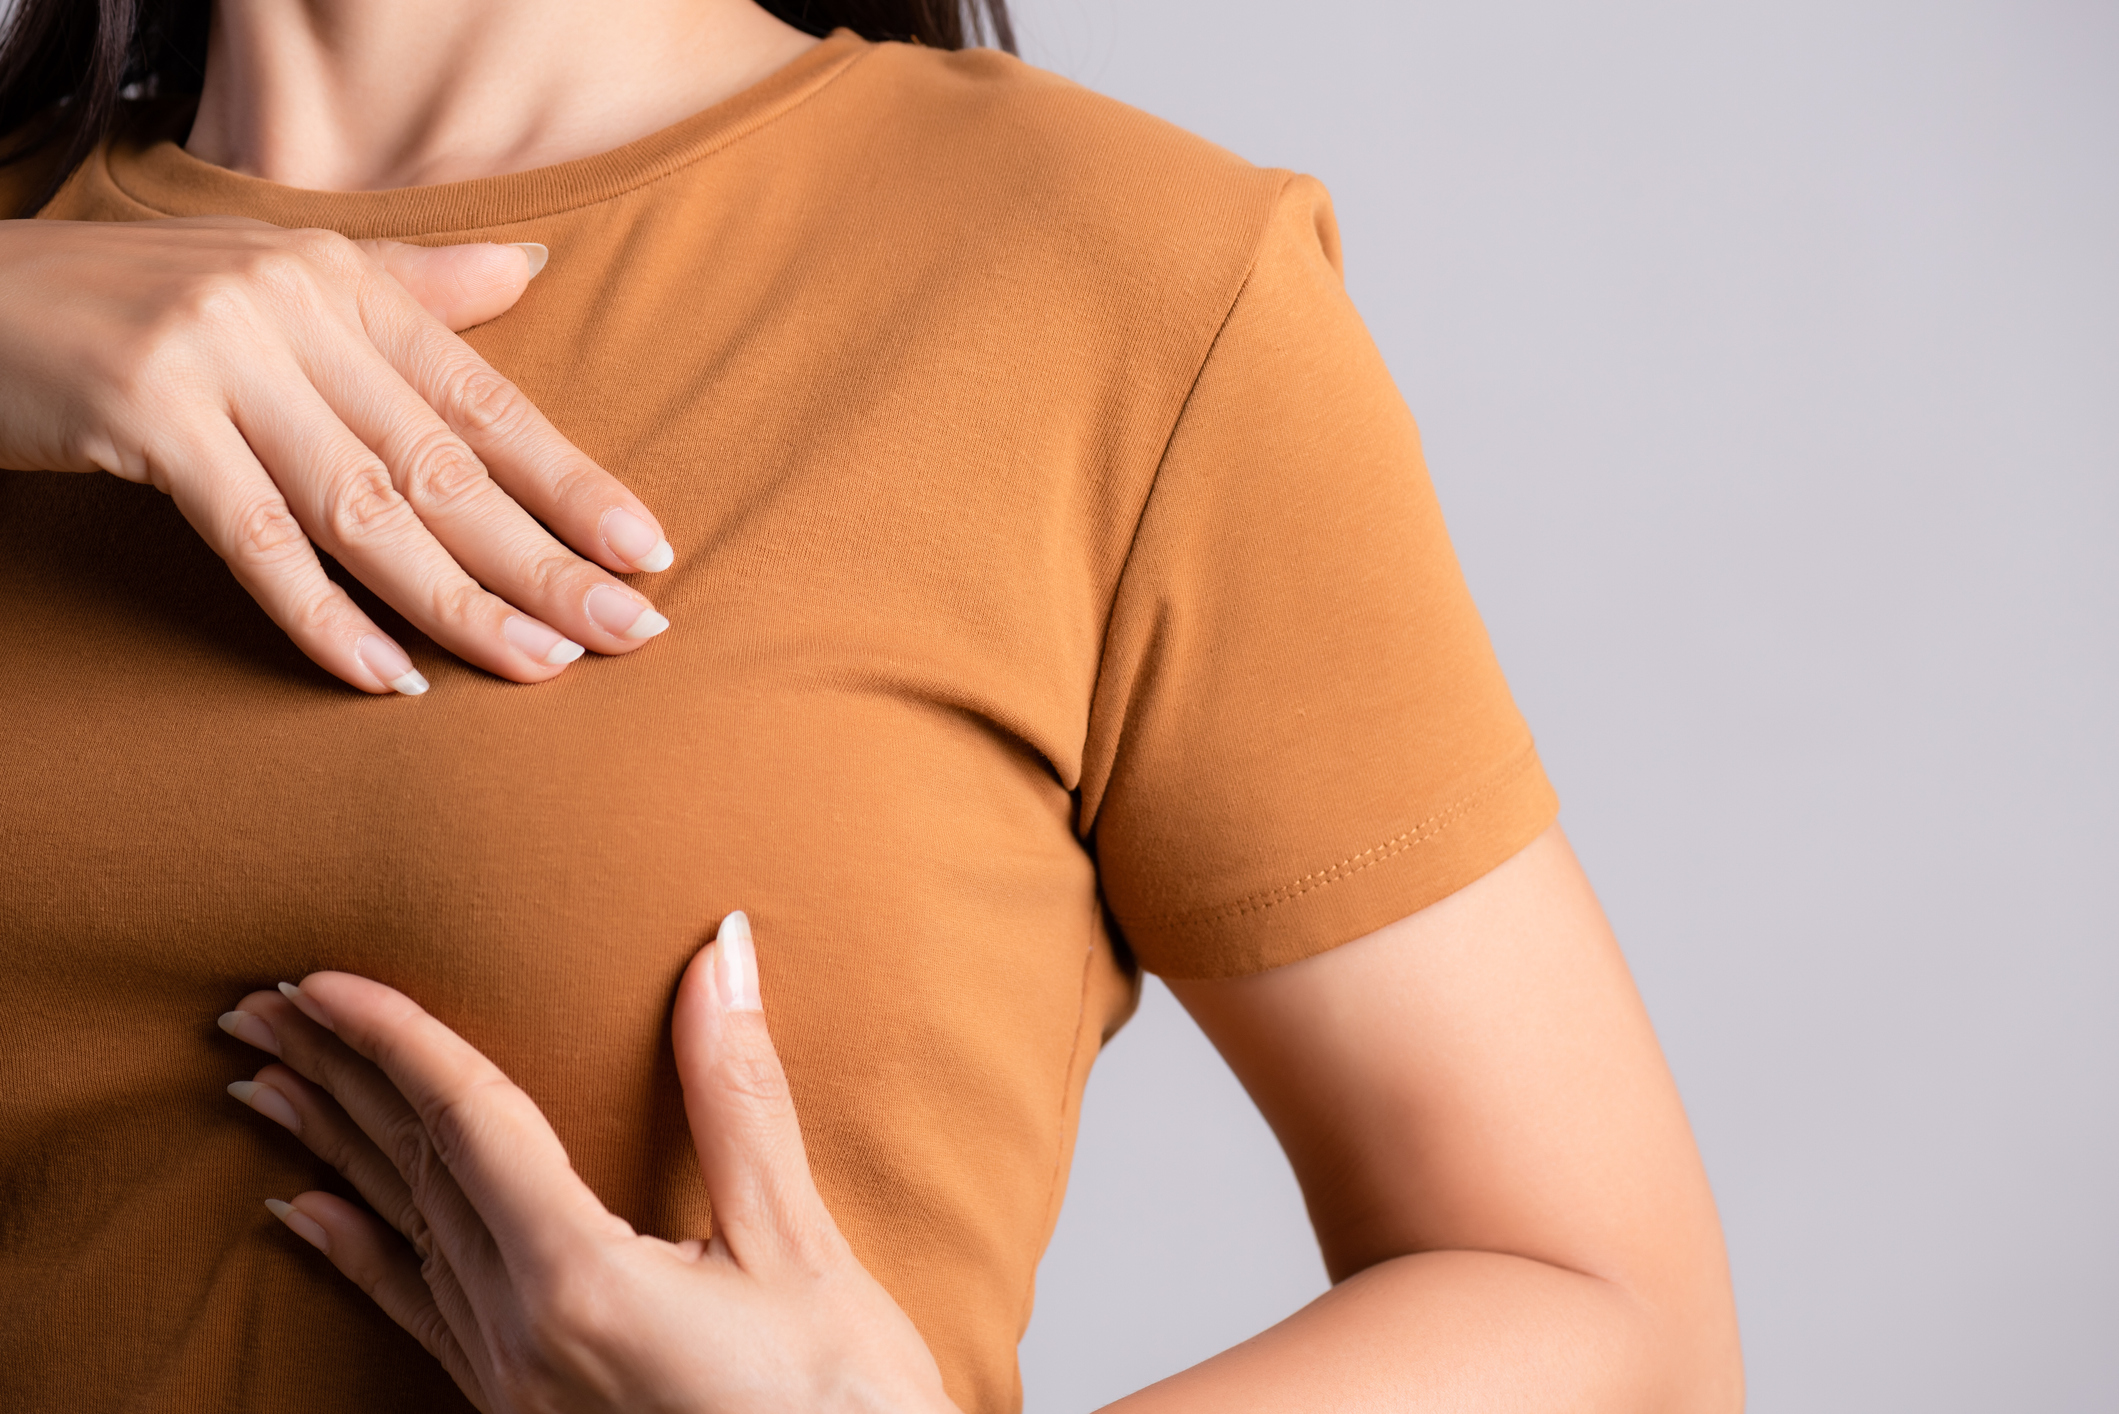 10 ways to reduce your risk of breast cancer